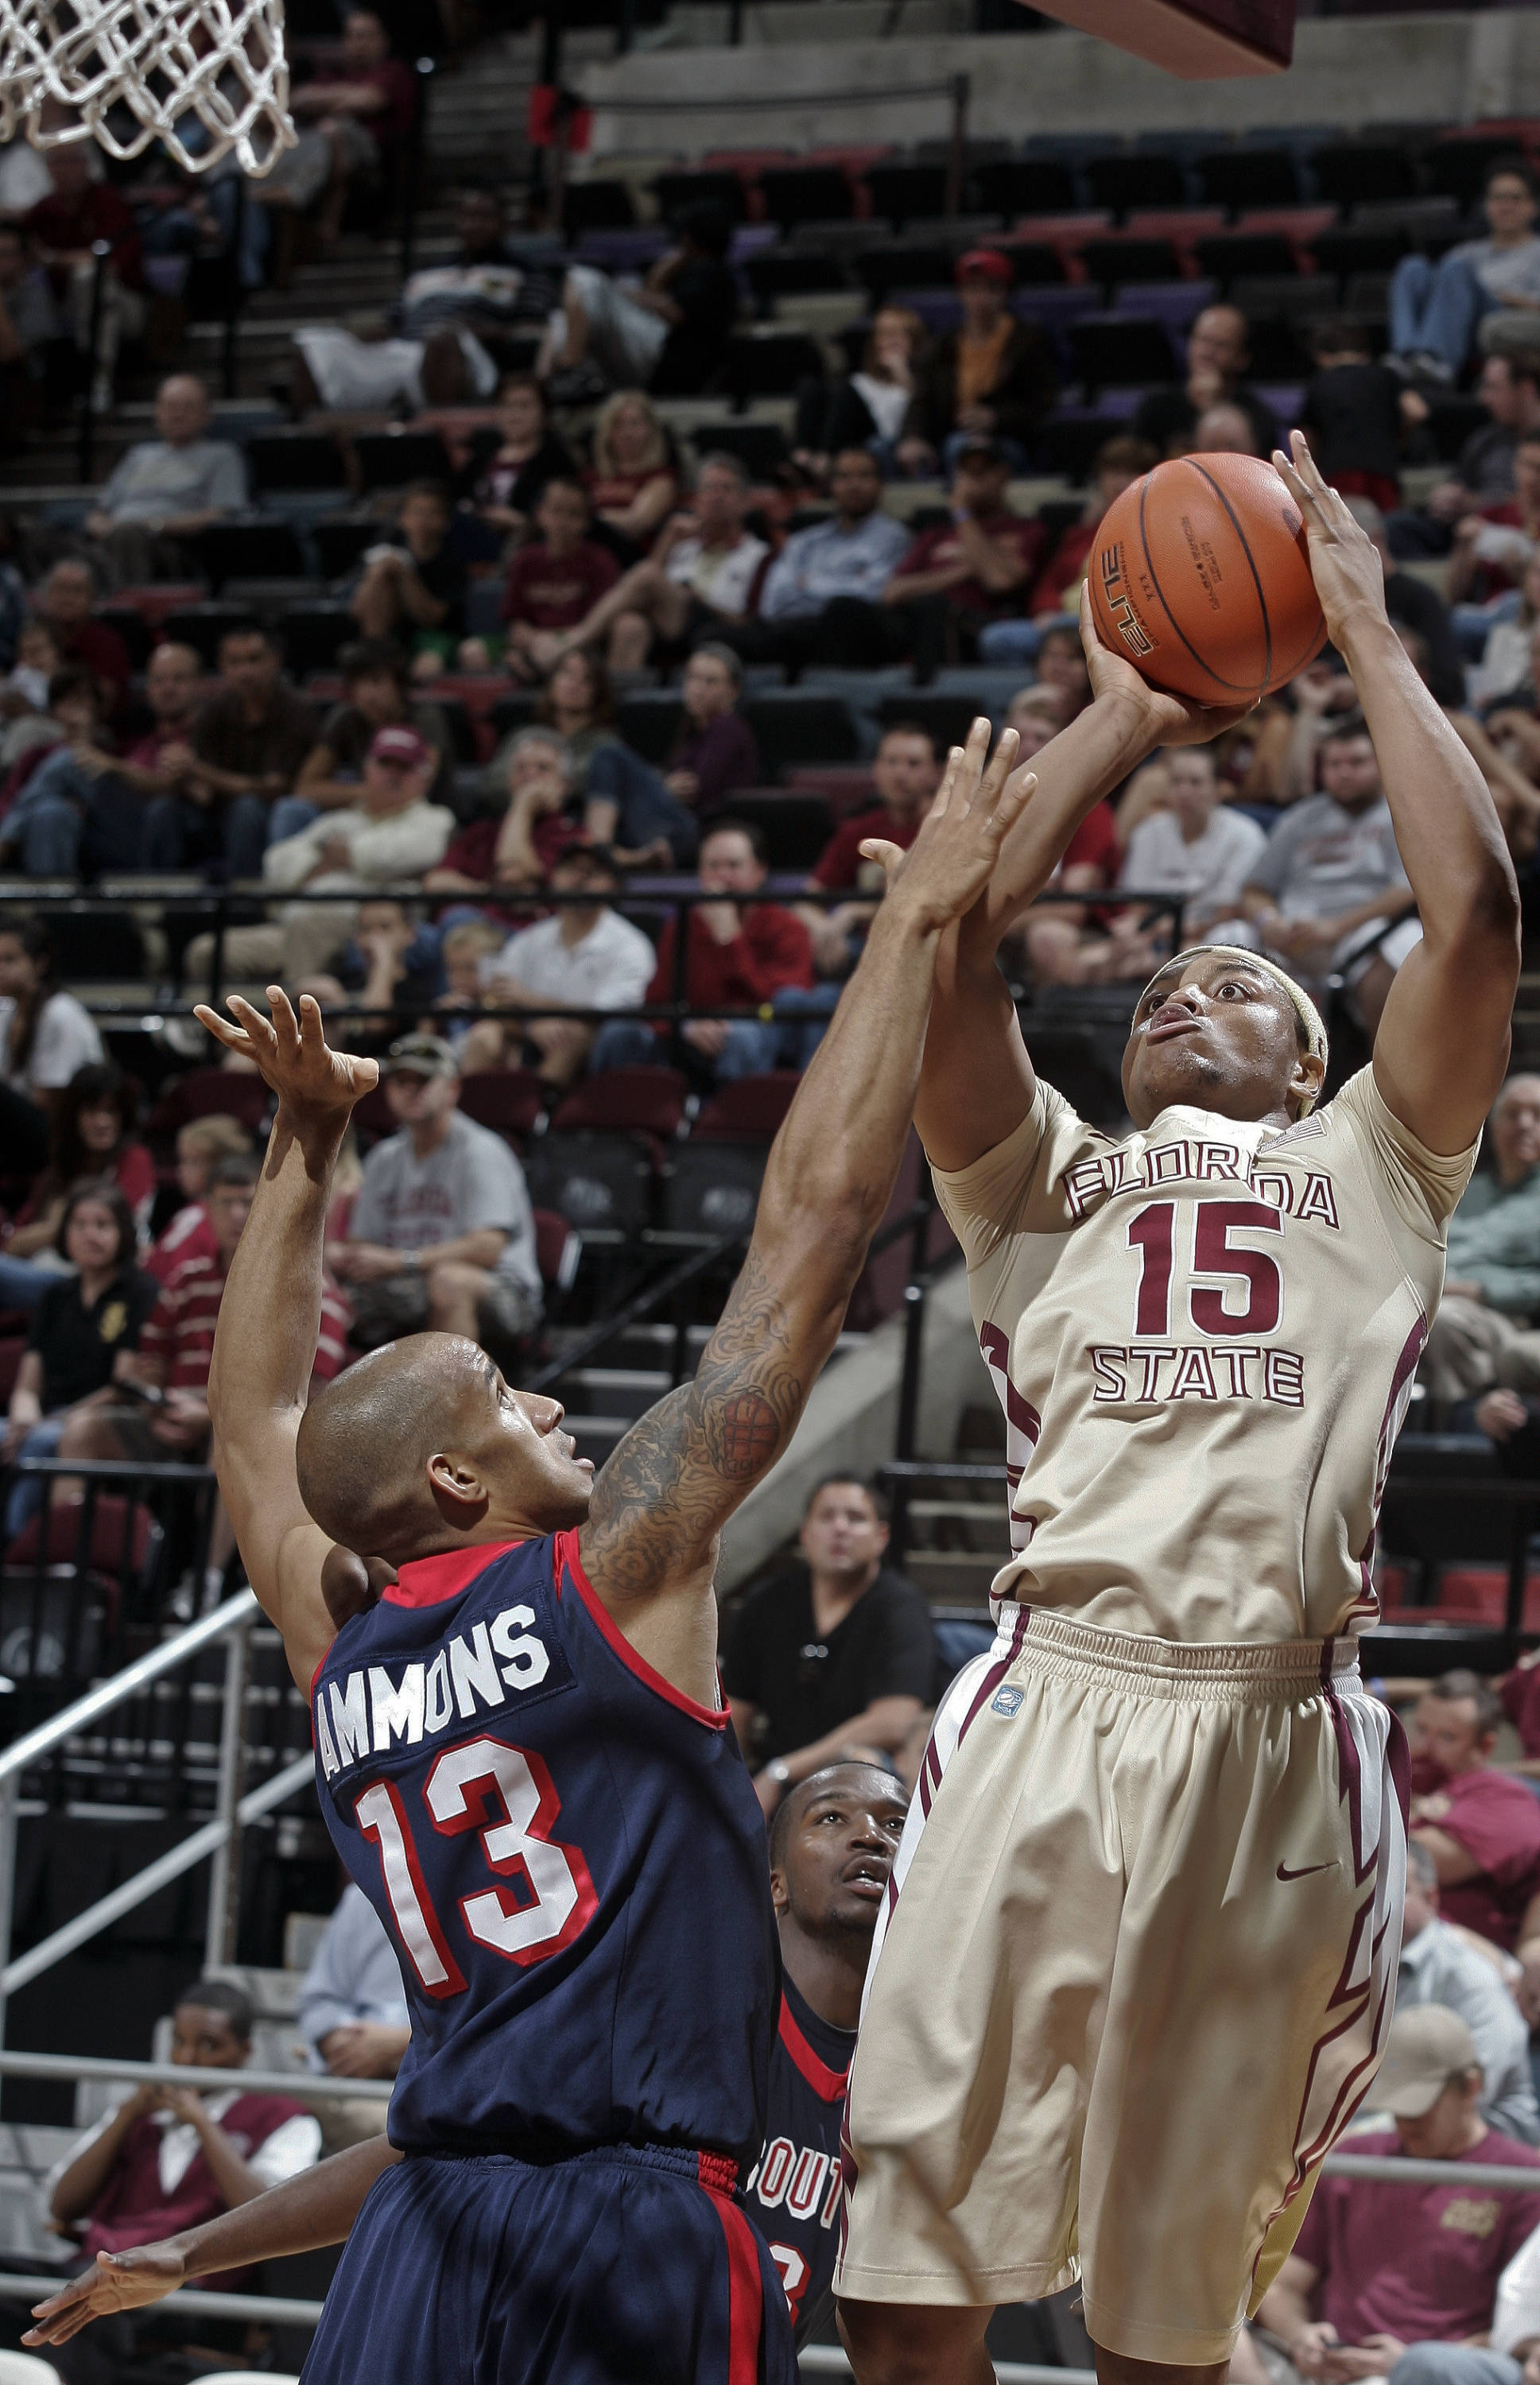 Florida State forward Terrance Shannon (15) makes a basket over South Alabama guard Mychal Ammons (13). (AP Photo/Phil Sears)